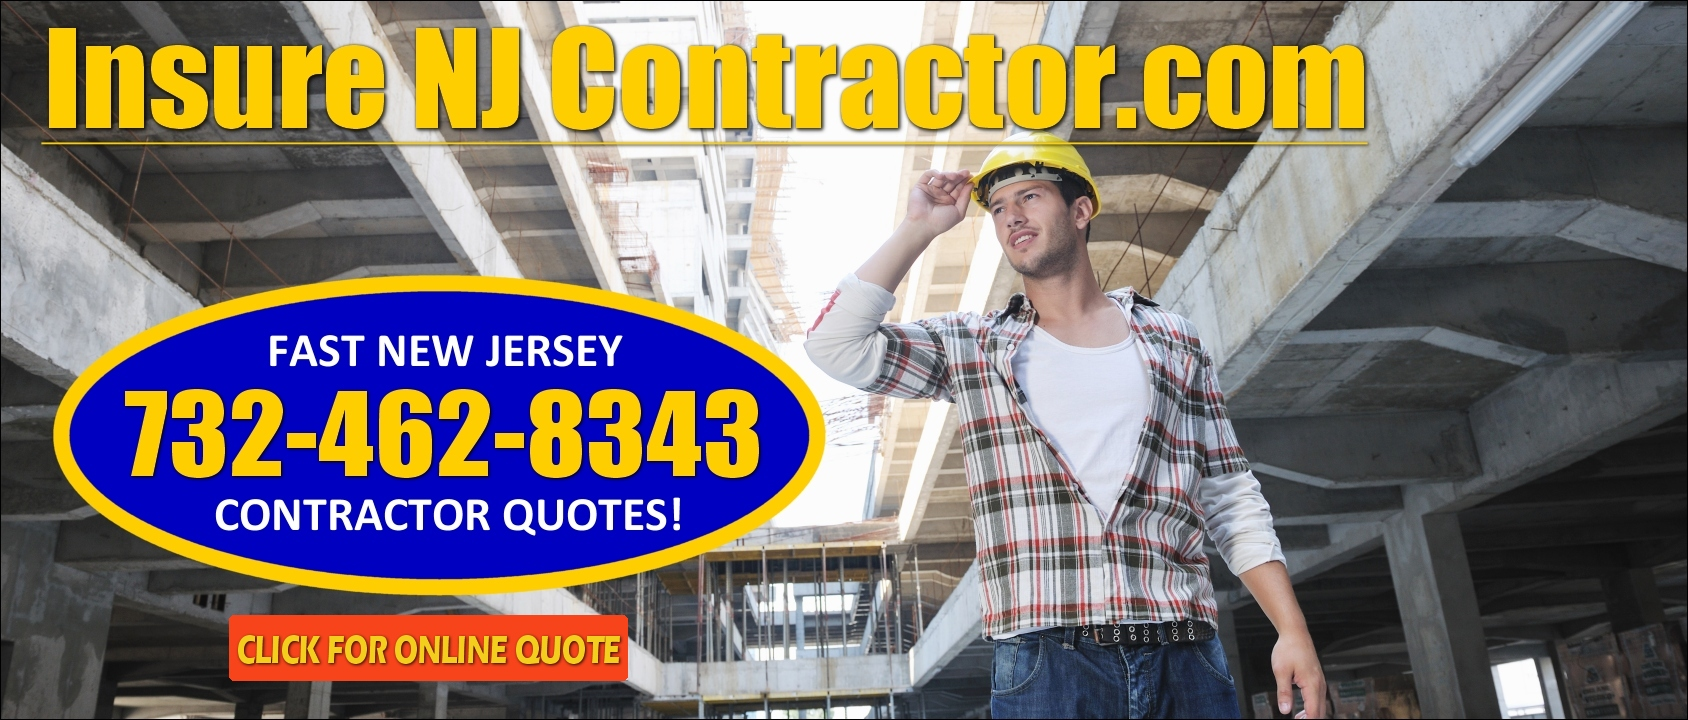 low cost contractor insurance quotes from InsureNJContractor.com